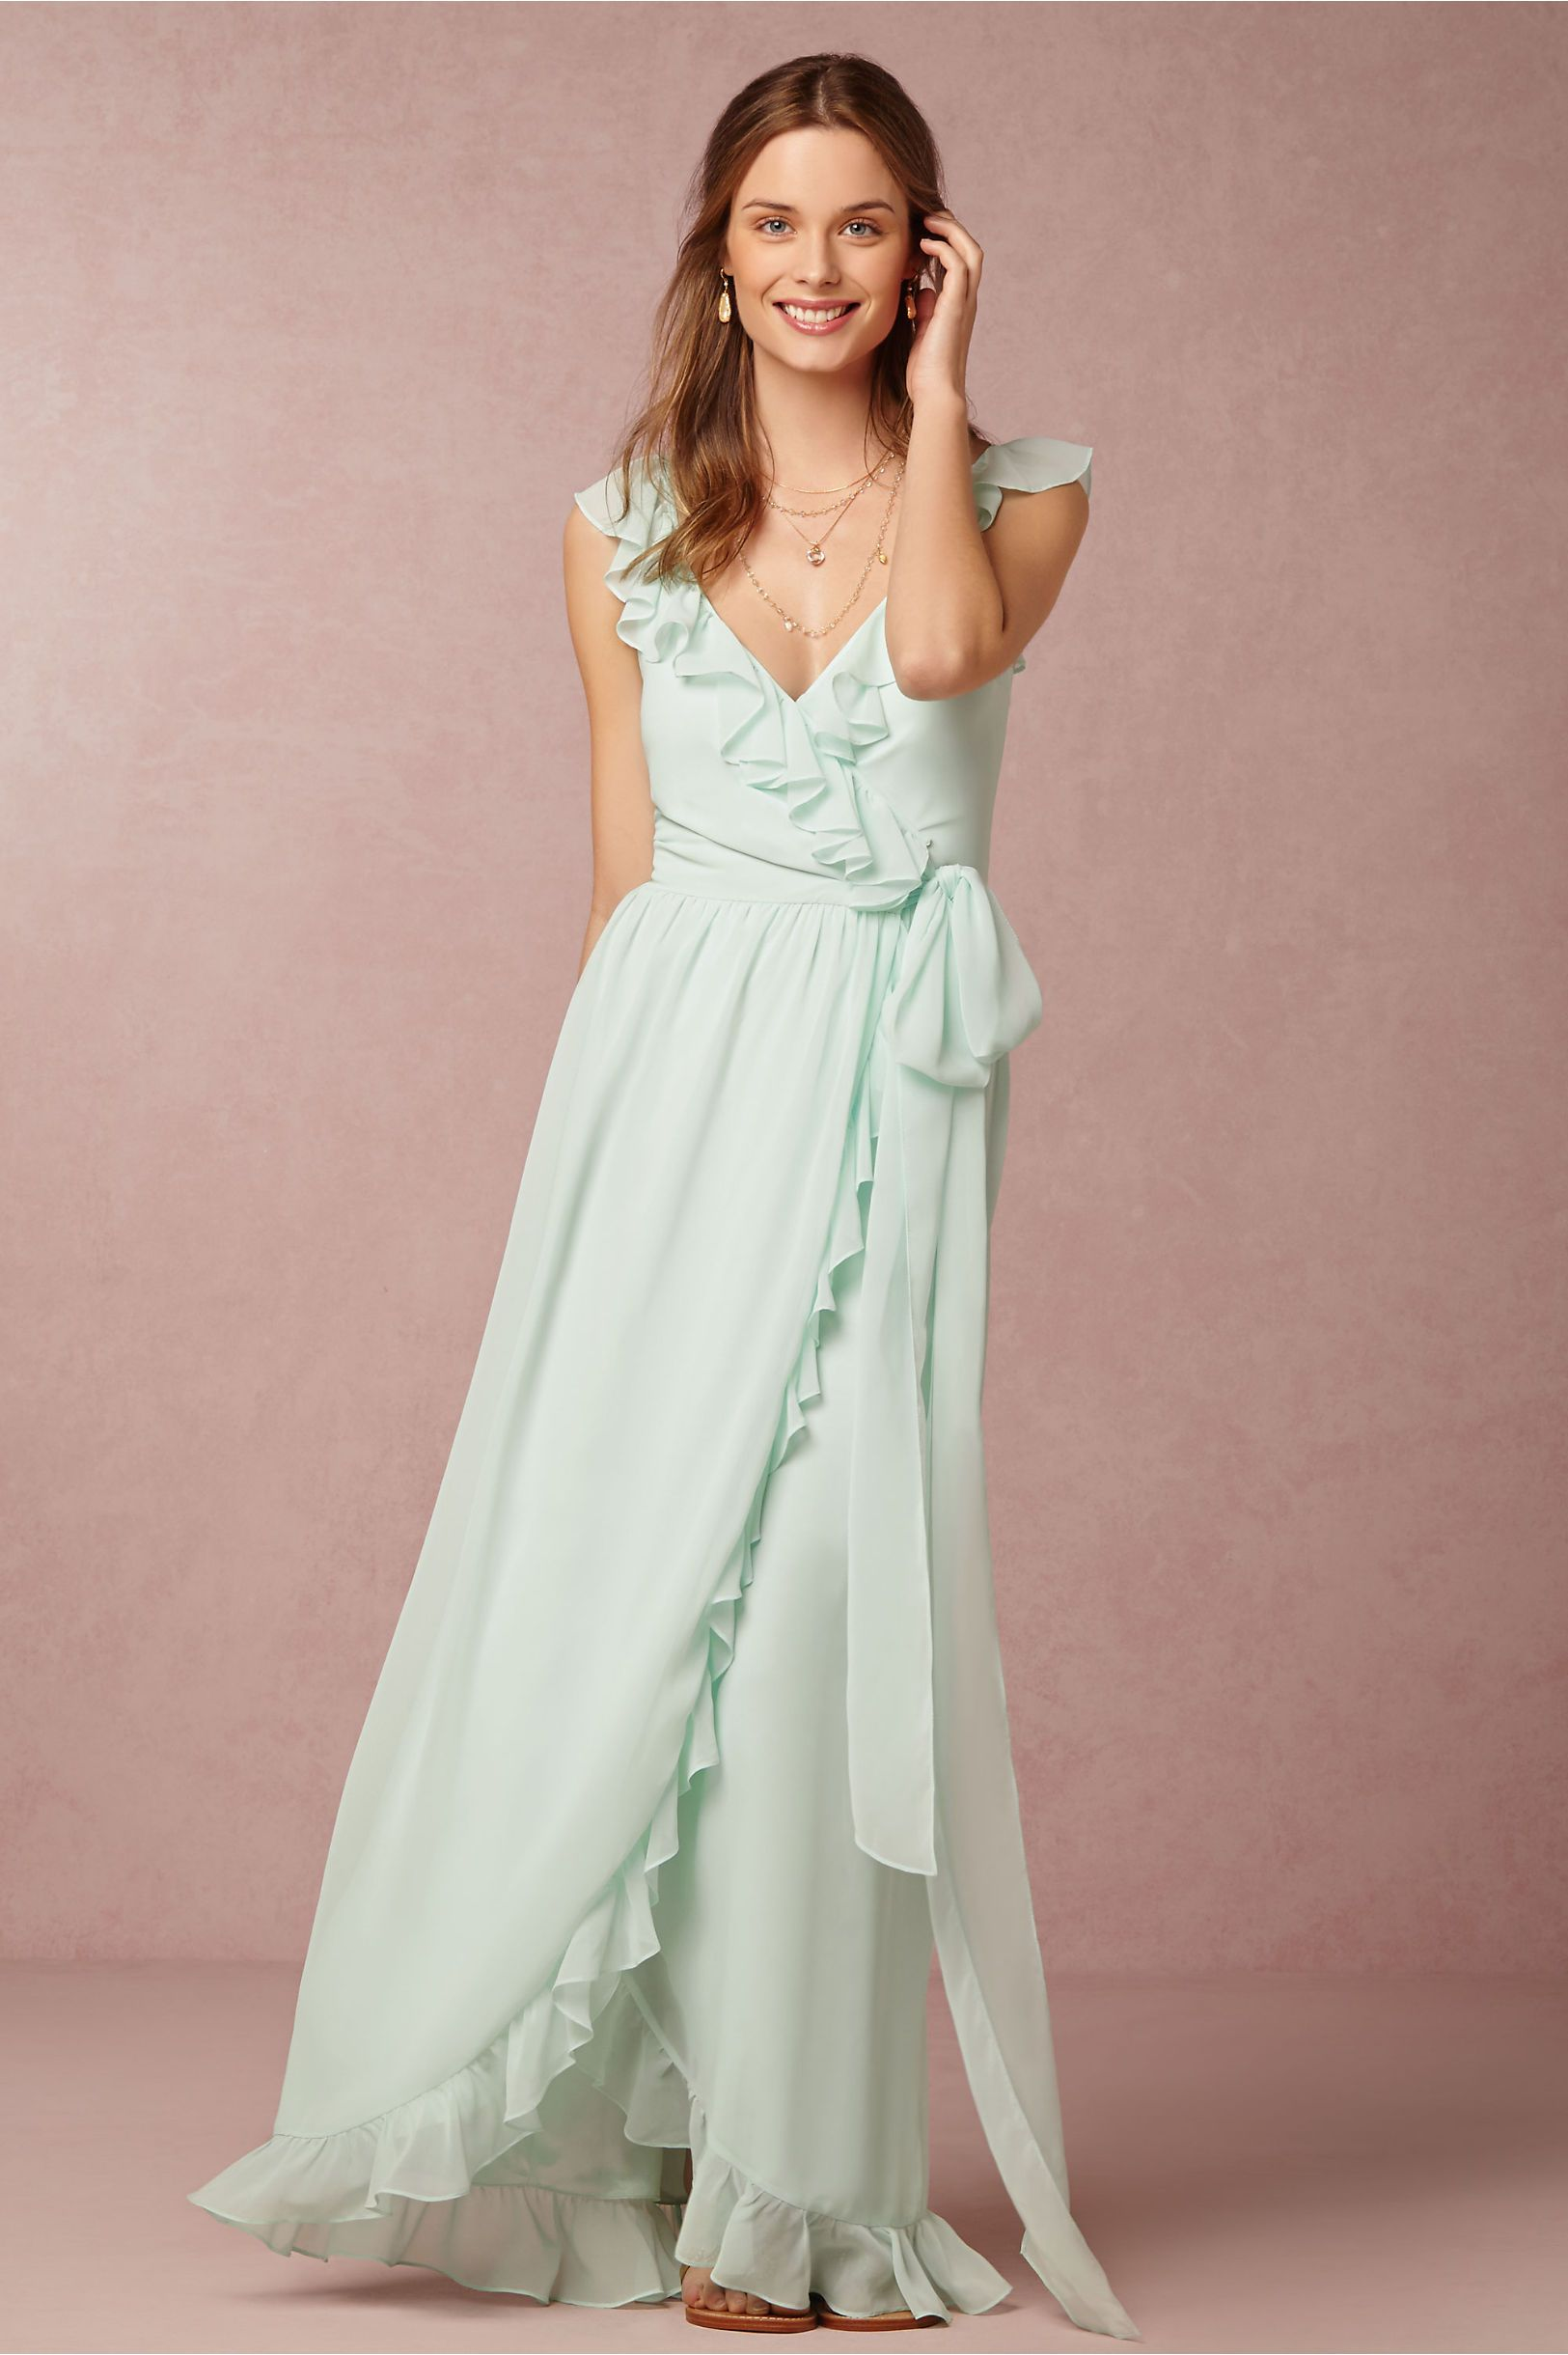 Polly Dress in Sale Dresses at BHLDN | Dresses Galore | Pinterest ...